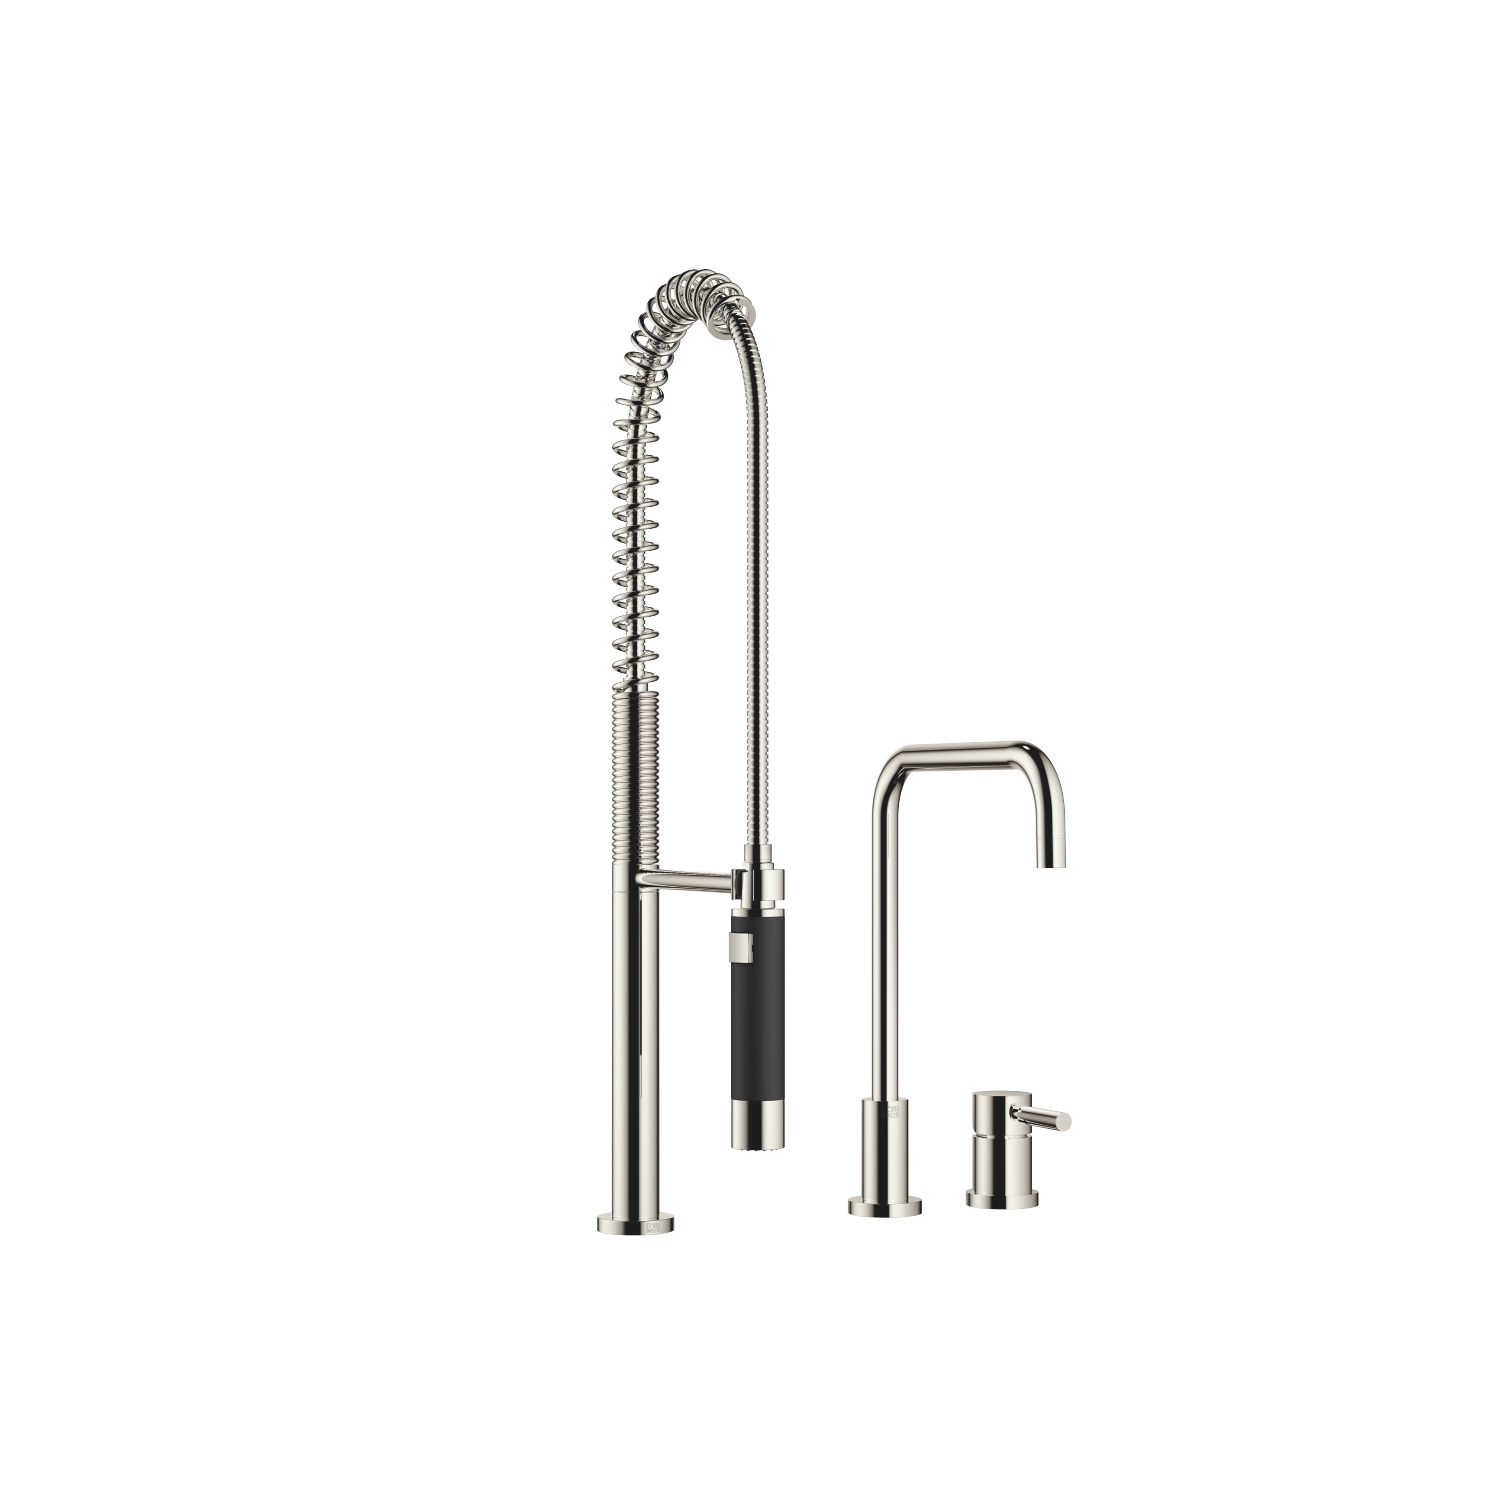 Two-hole mixer with individual flanges with Profi spray set - platinum